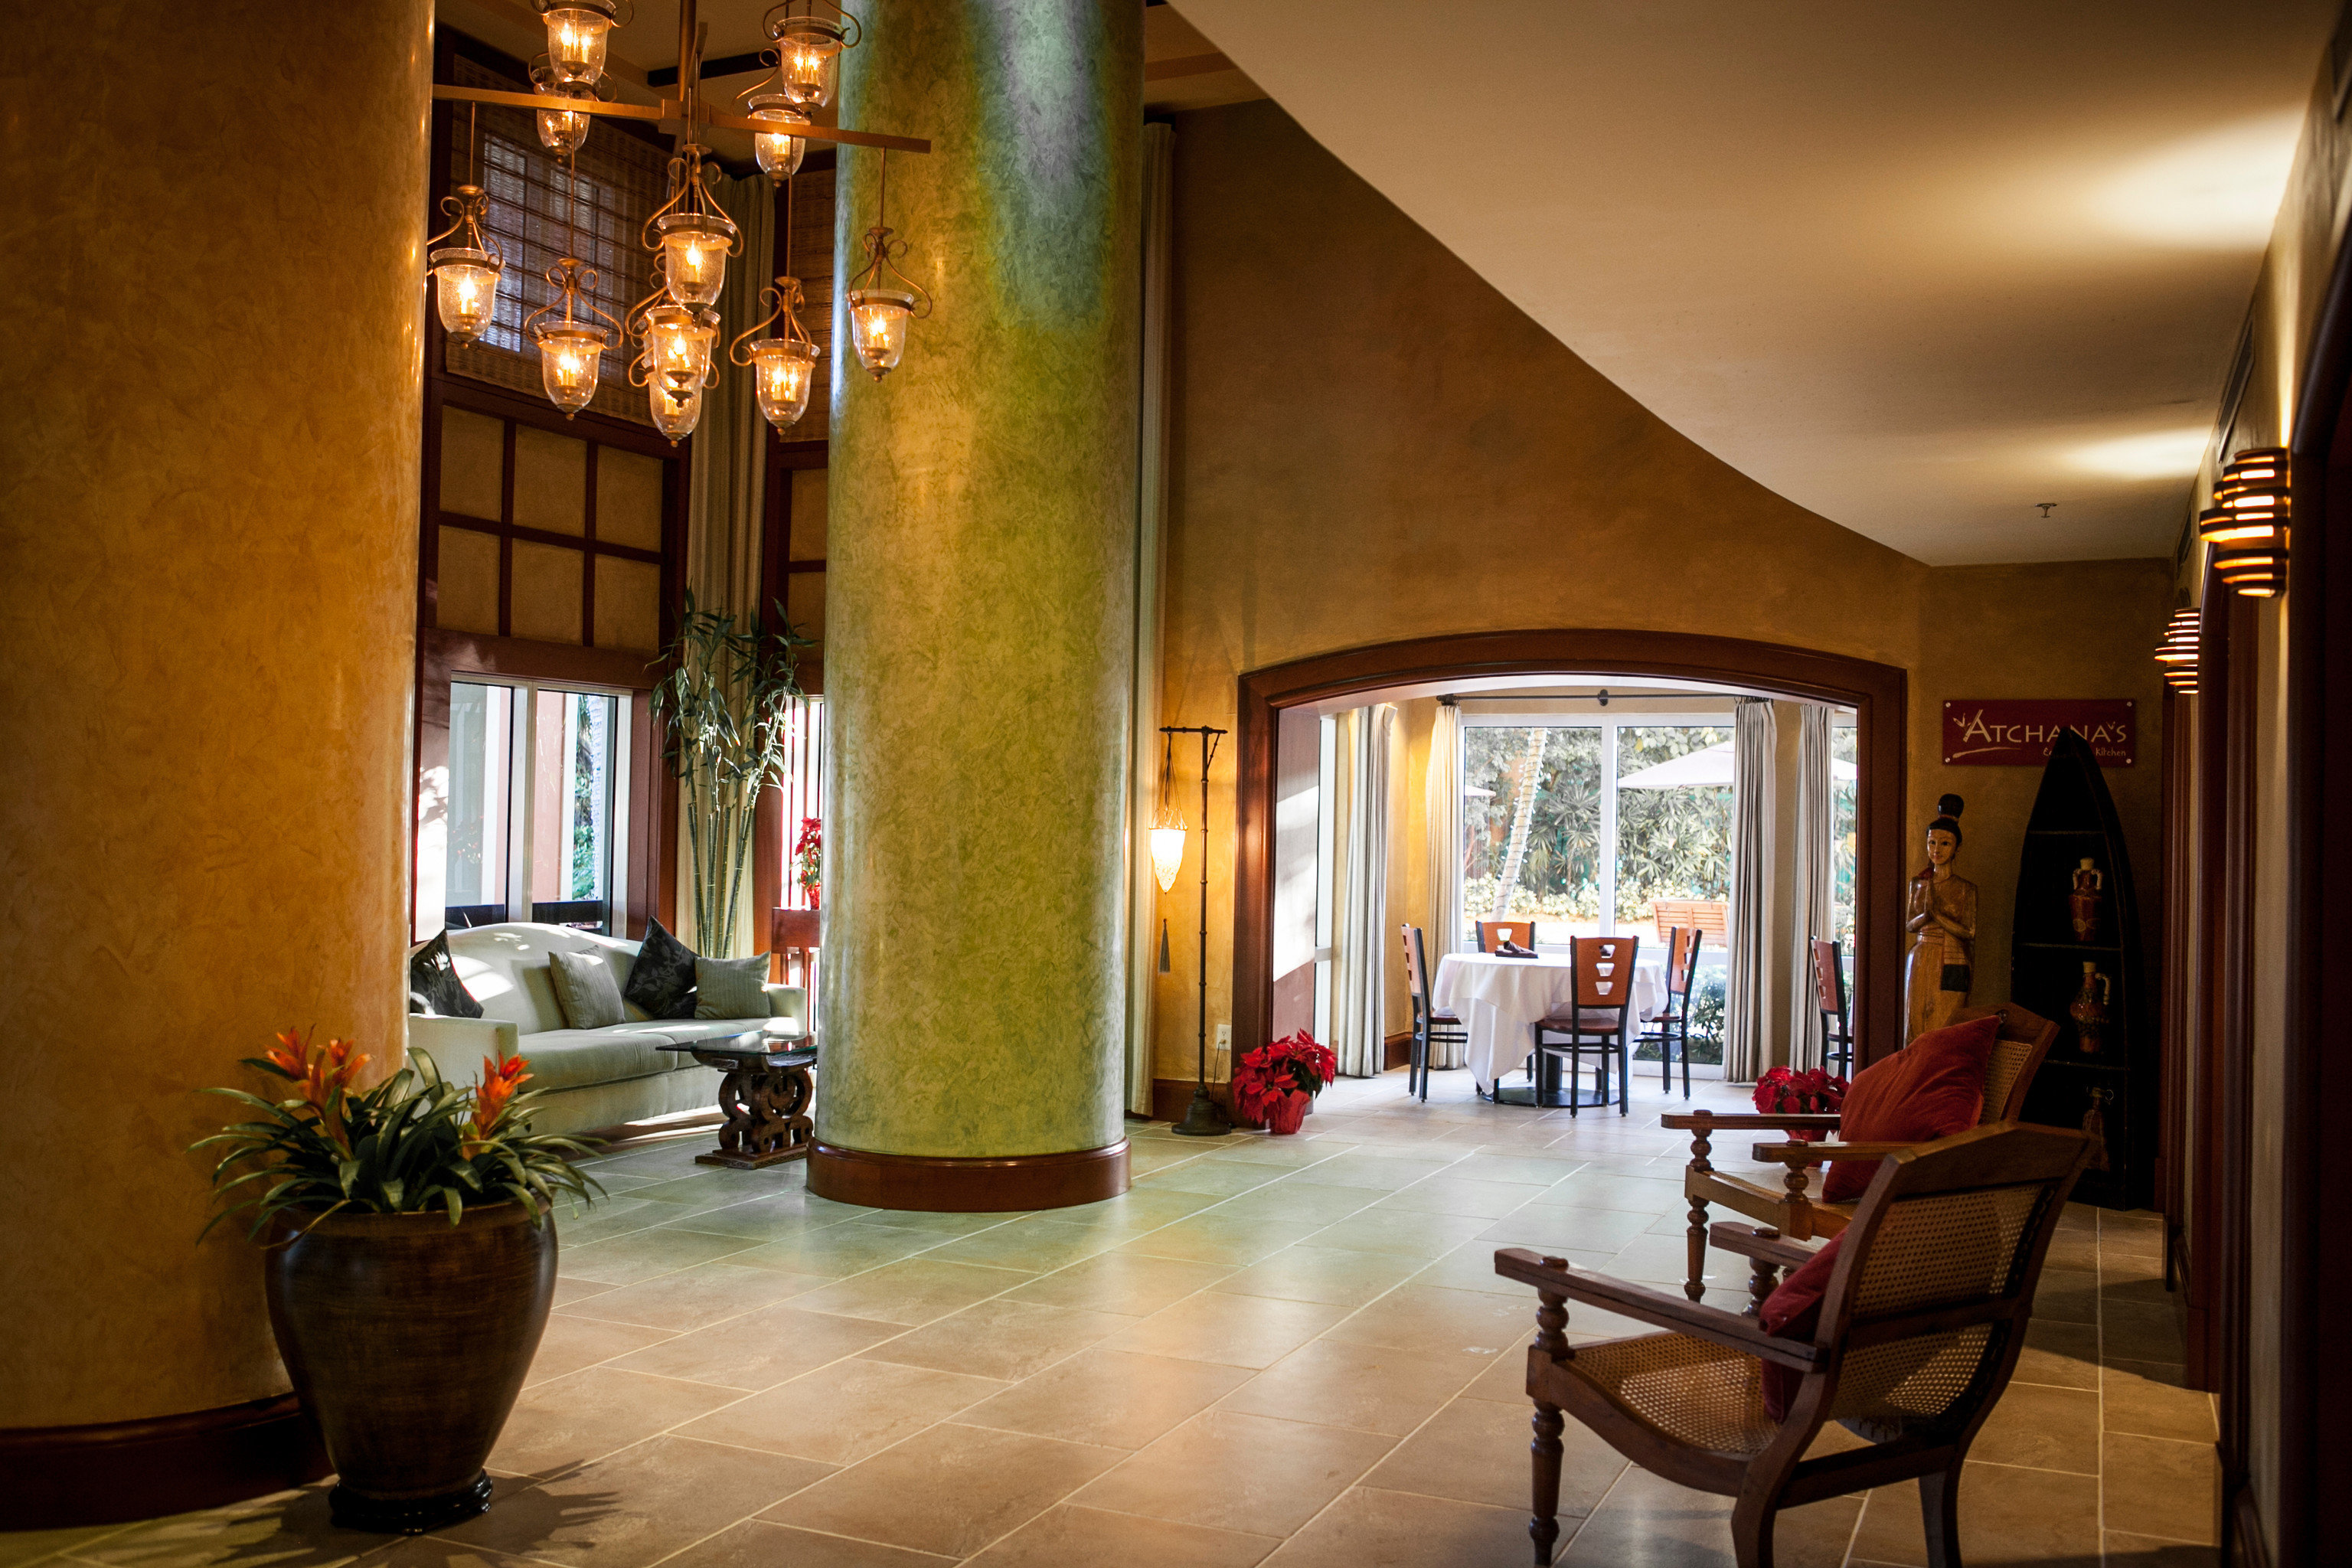 Lobby building house home living room mansion tourist attraction restaurant